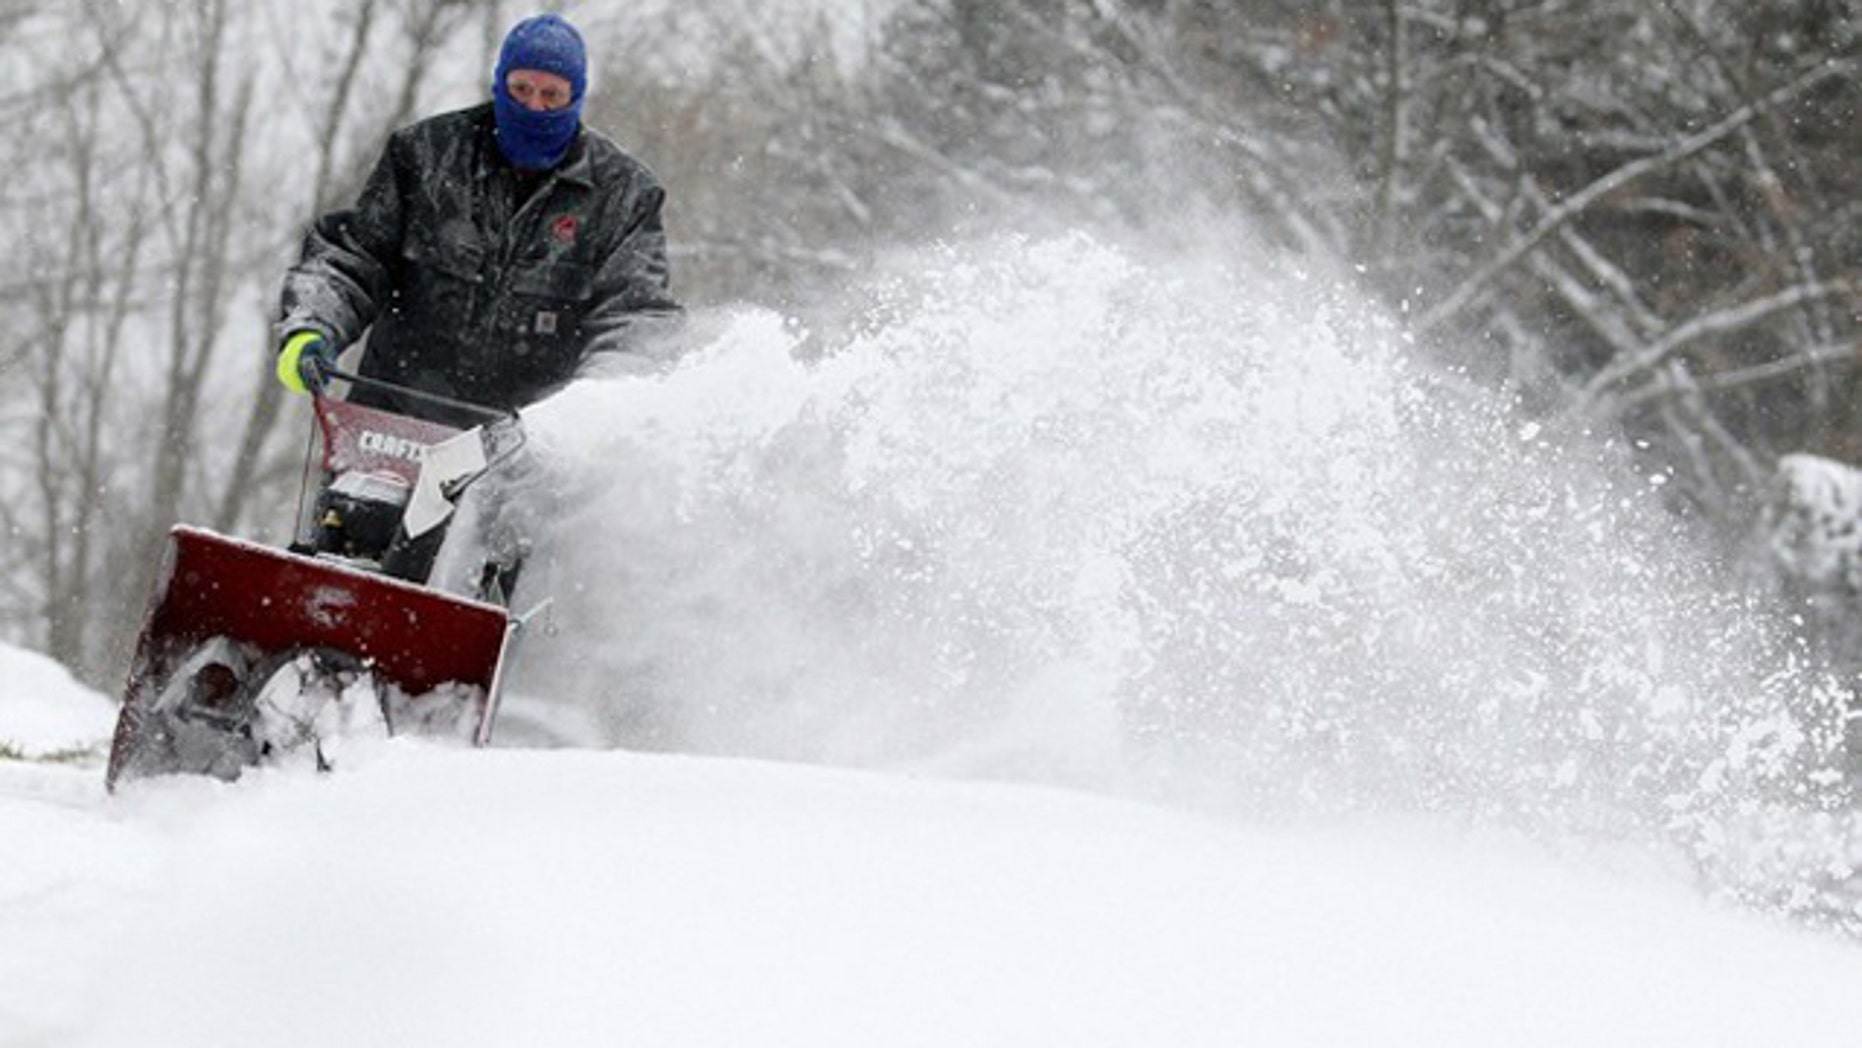 The nation's midsection is bracing for a massive winter storm that could bring several inches of snow and ice to much of the Plains and Midwest early this week (Reuters).